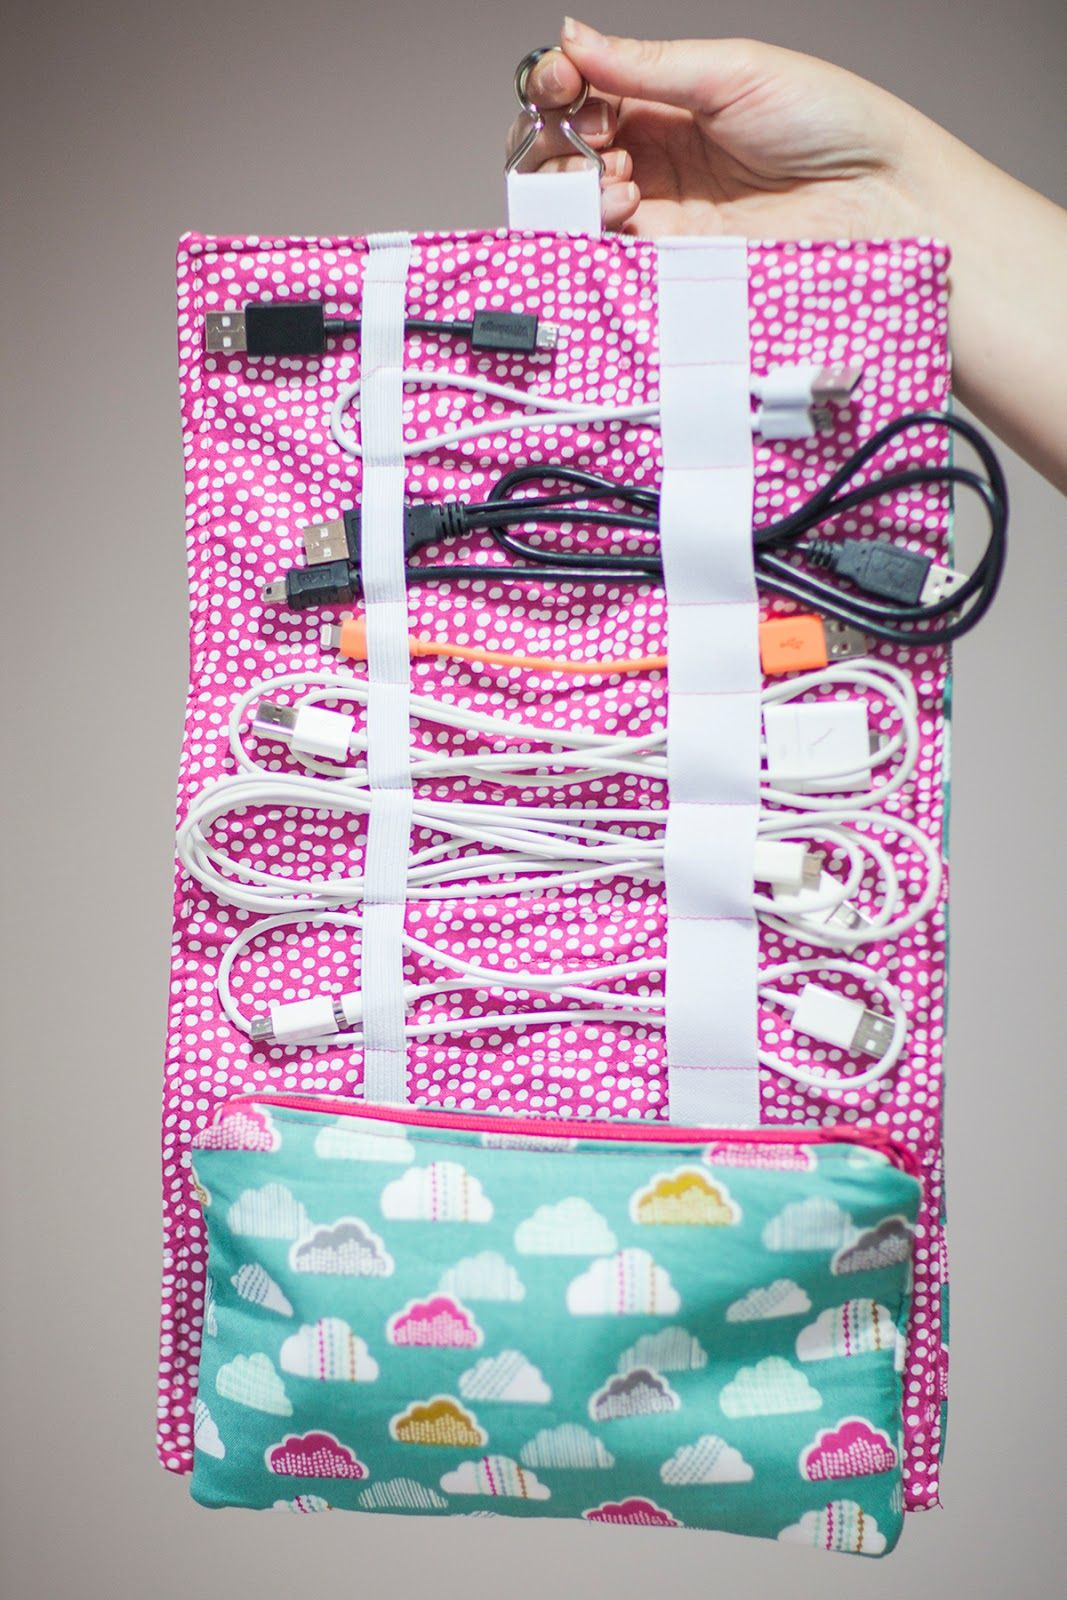 Makers month make it cable cosy free pdf download cosy cord diy travel cable cord organizer so clever solutioingenieria Image collections